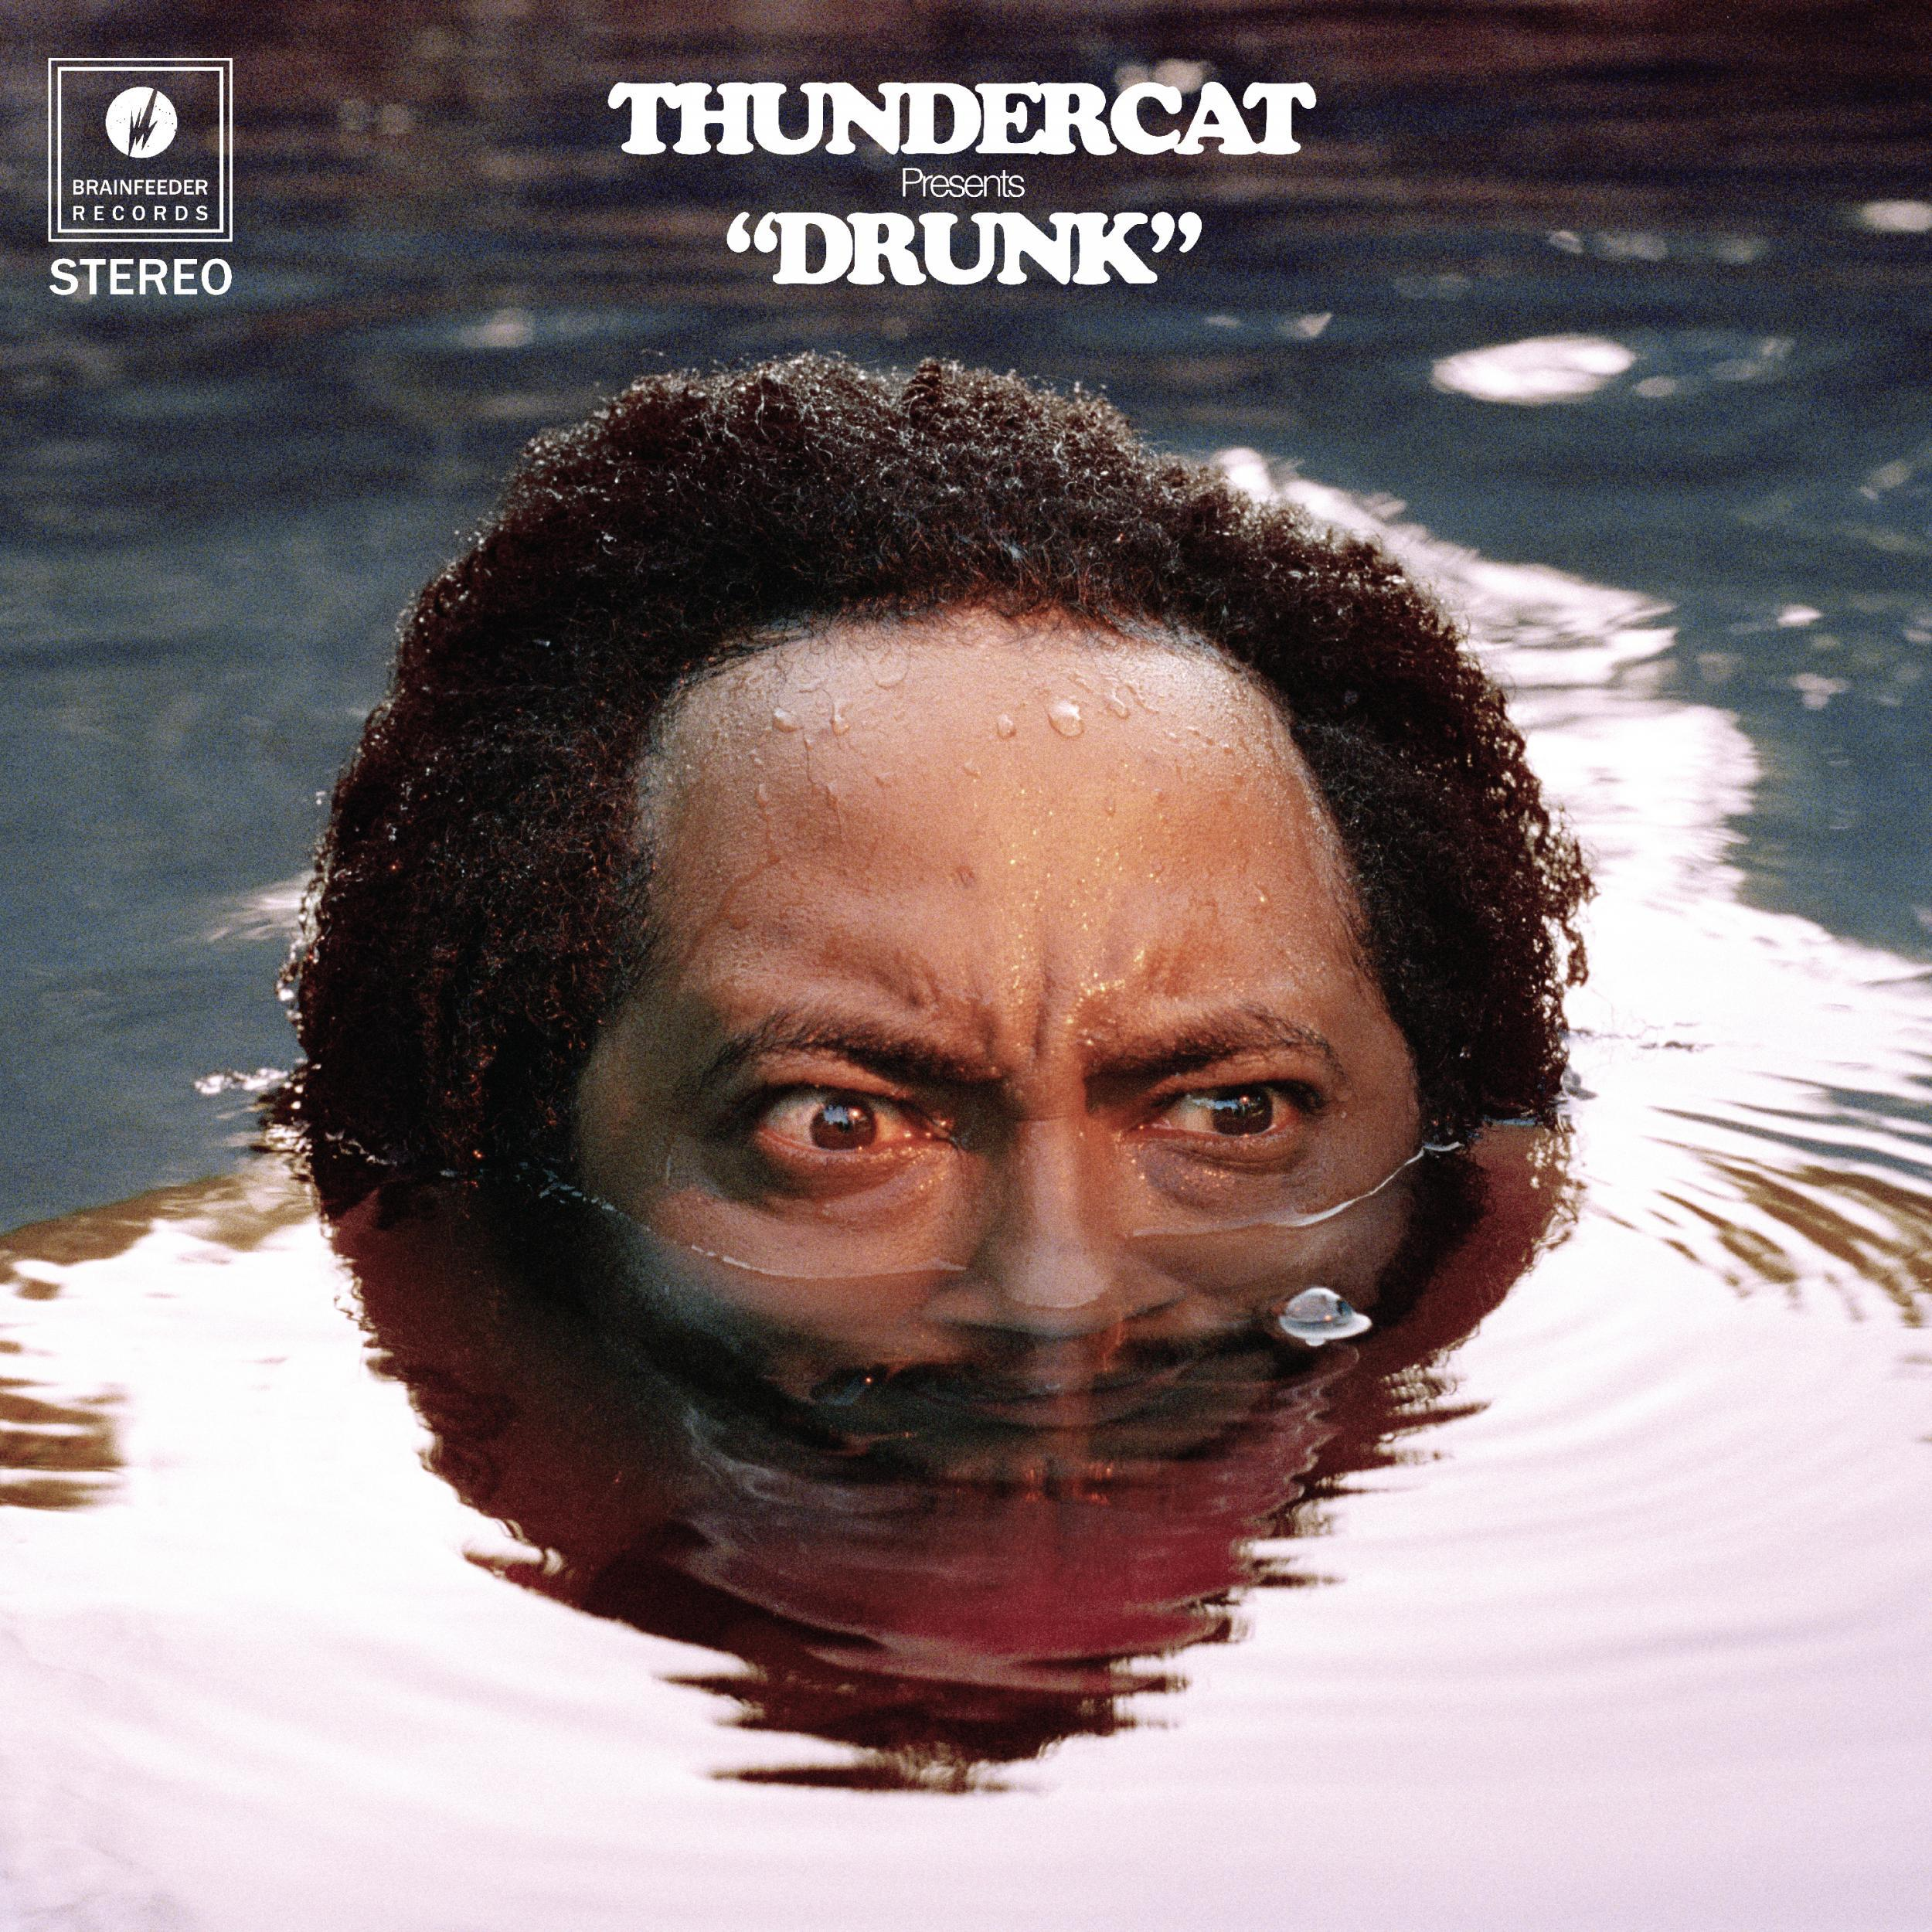 Thundercat interview: Bass prodigy on his album Drunk, jazz